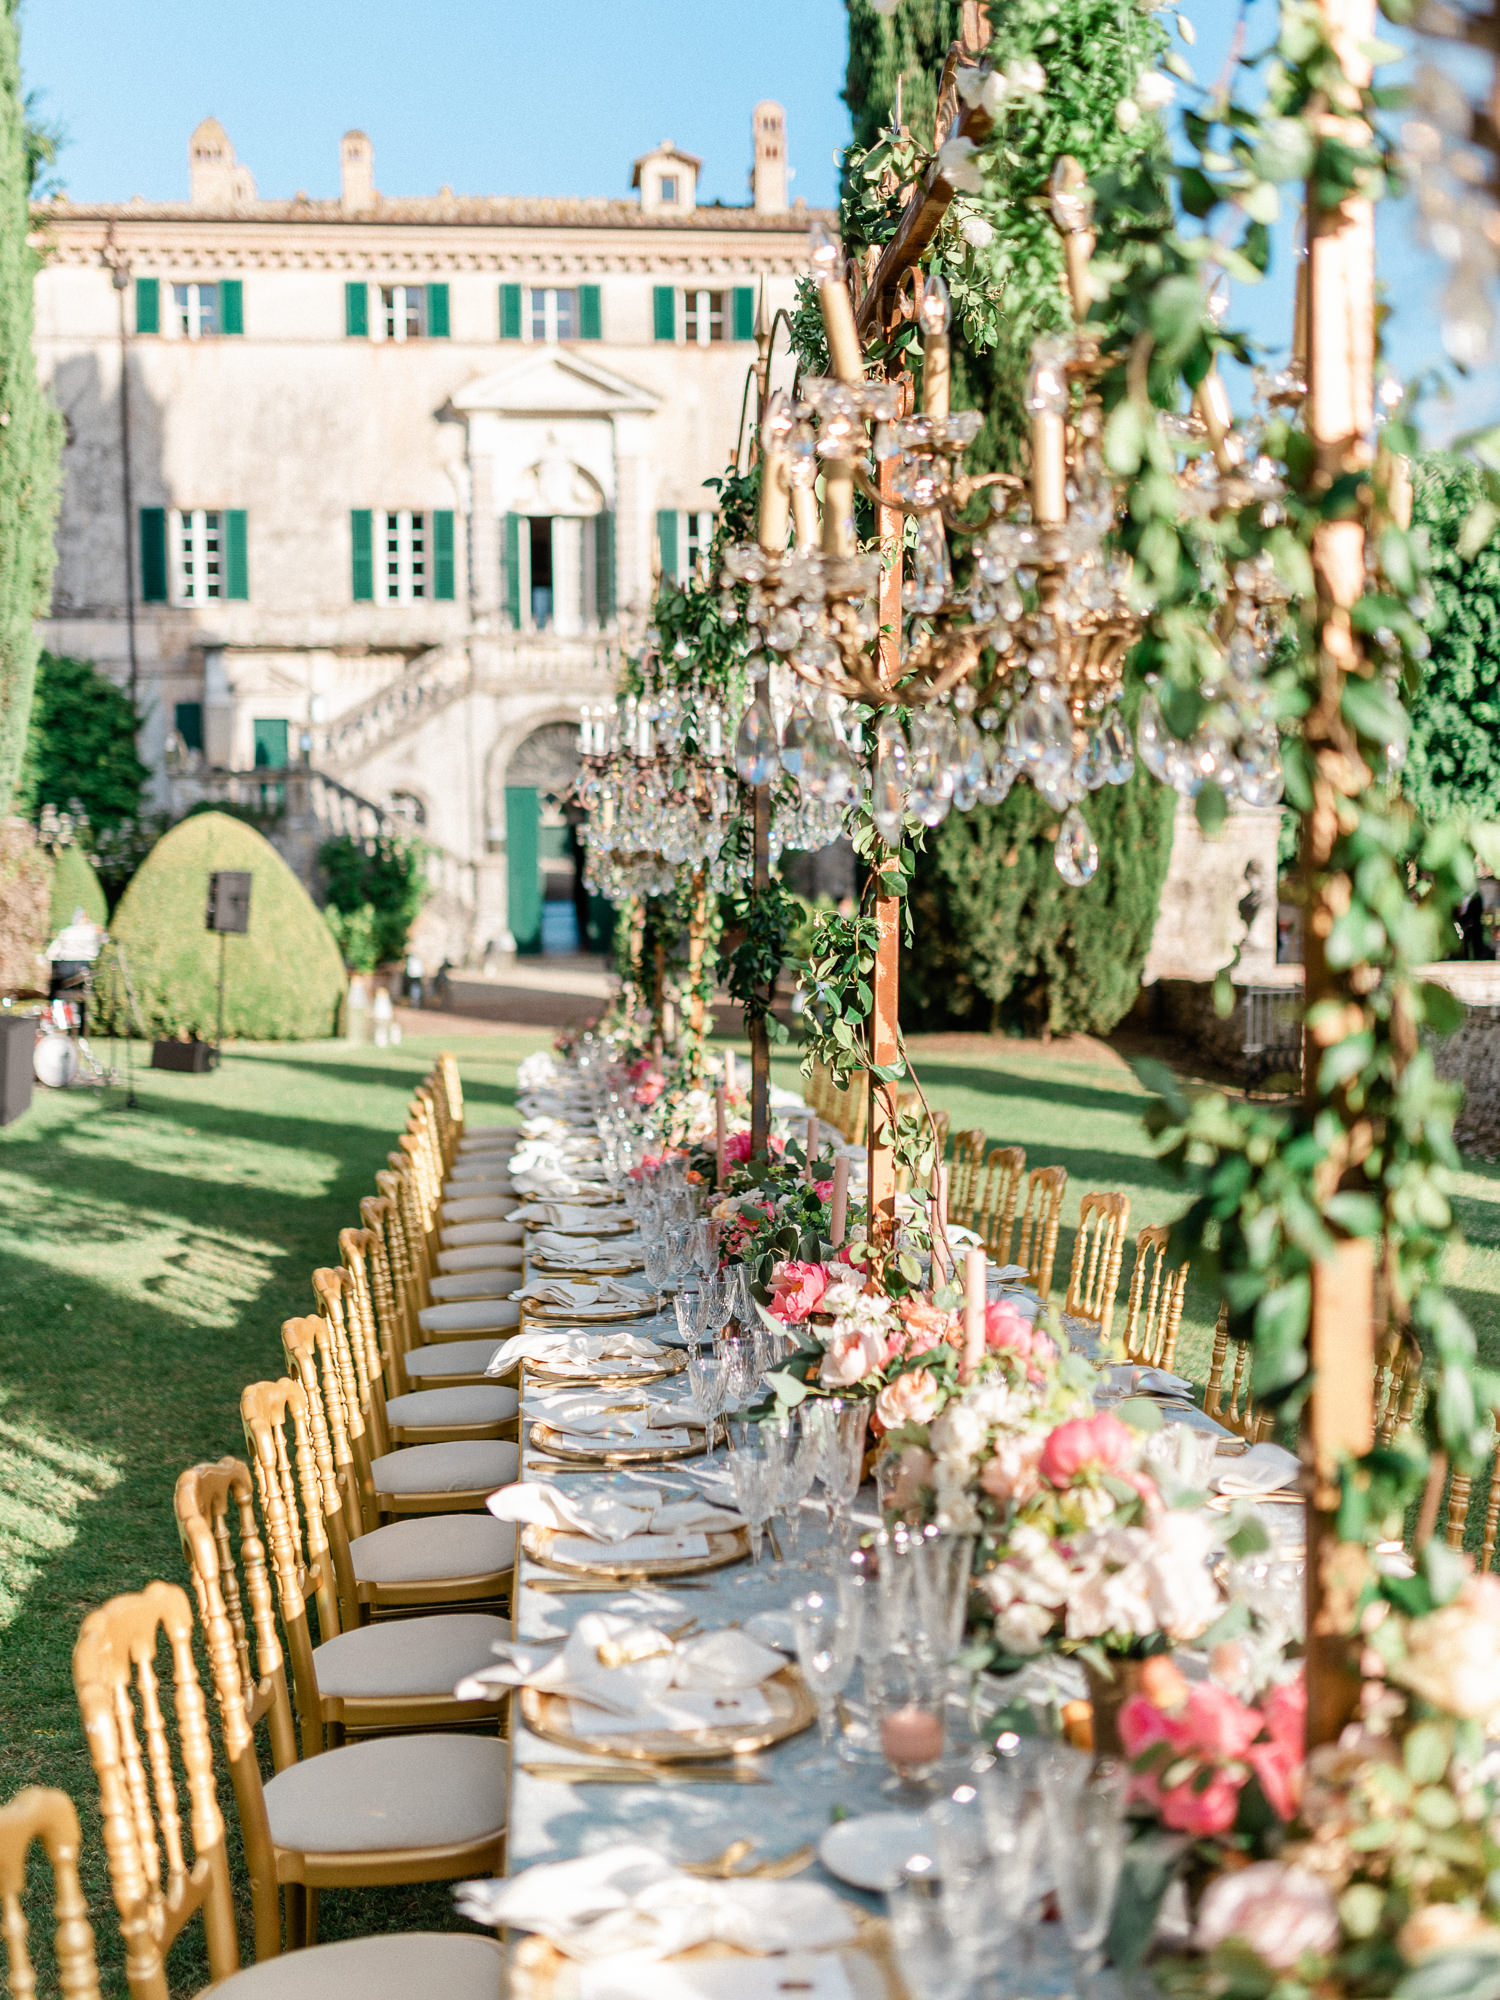 Elaborate outdoor reception table at Villa Centinale, Italy, photographed by Gianluca Adovasio